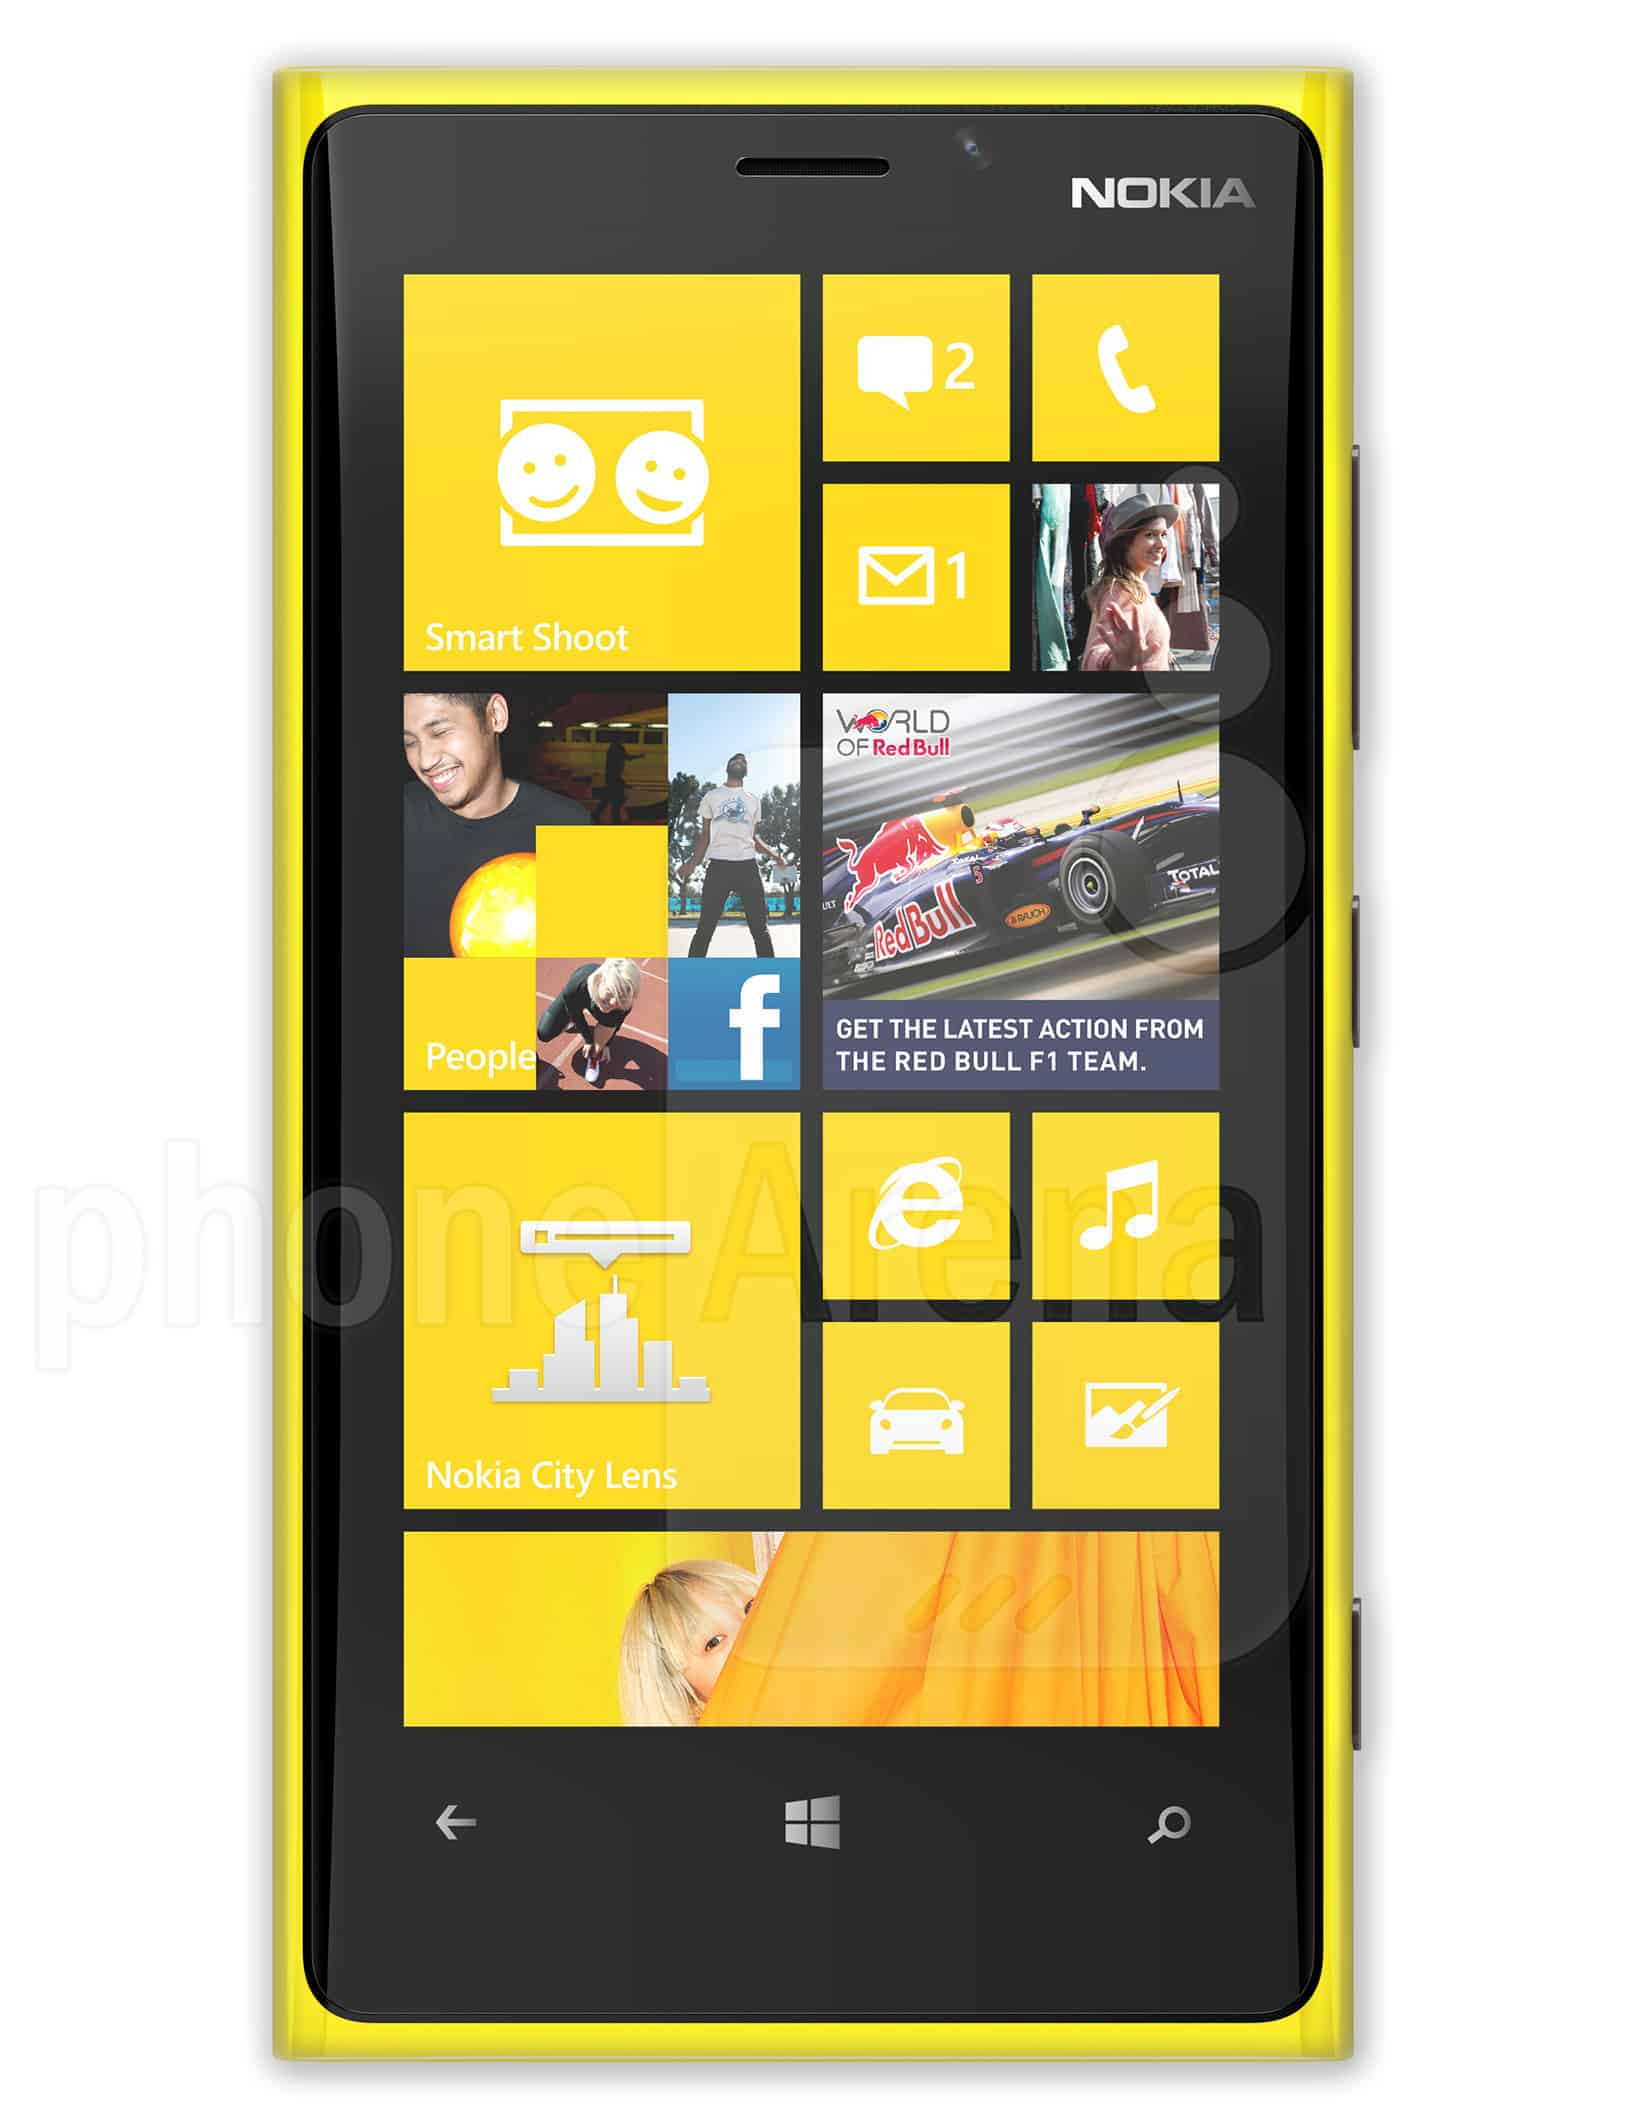 Nokia-Lumia-Series-920--Hi-Fi-New-Technology-Tech-World-Innovative-Tehnology-Future-Technology-beverly-hills-magazine